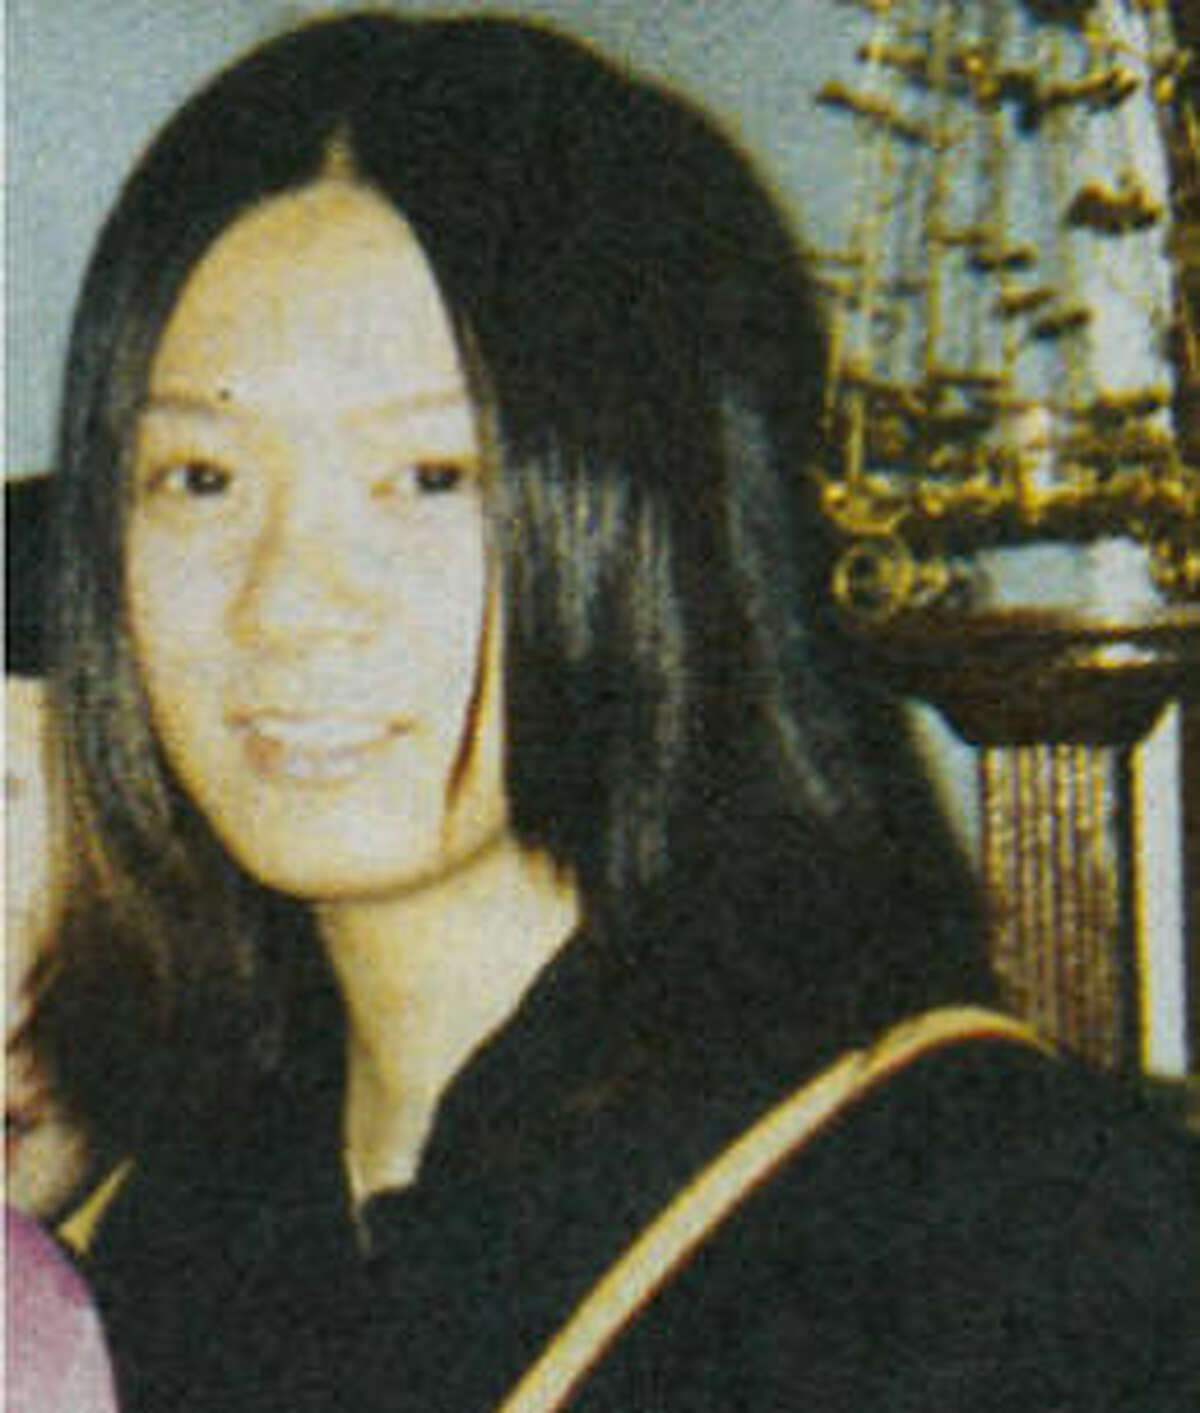 Texas police are trying to solve the mystery of who killed a Texas Lutheran student 15 years ago. Mikiko Kasahara, 21, threw an end of the semester party at her apartment in Seguin on Dec. 14, 2002. The next day, the apartment was on fire and investigators found Kasahara stranged to death.